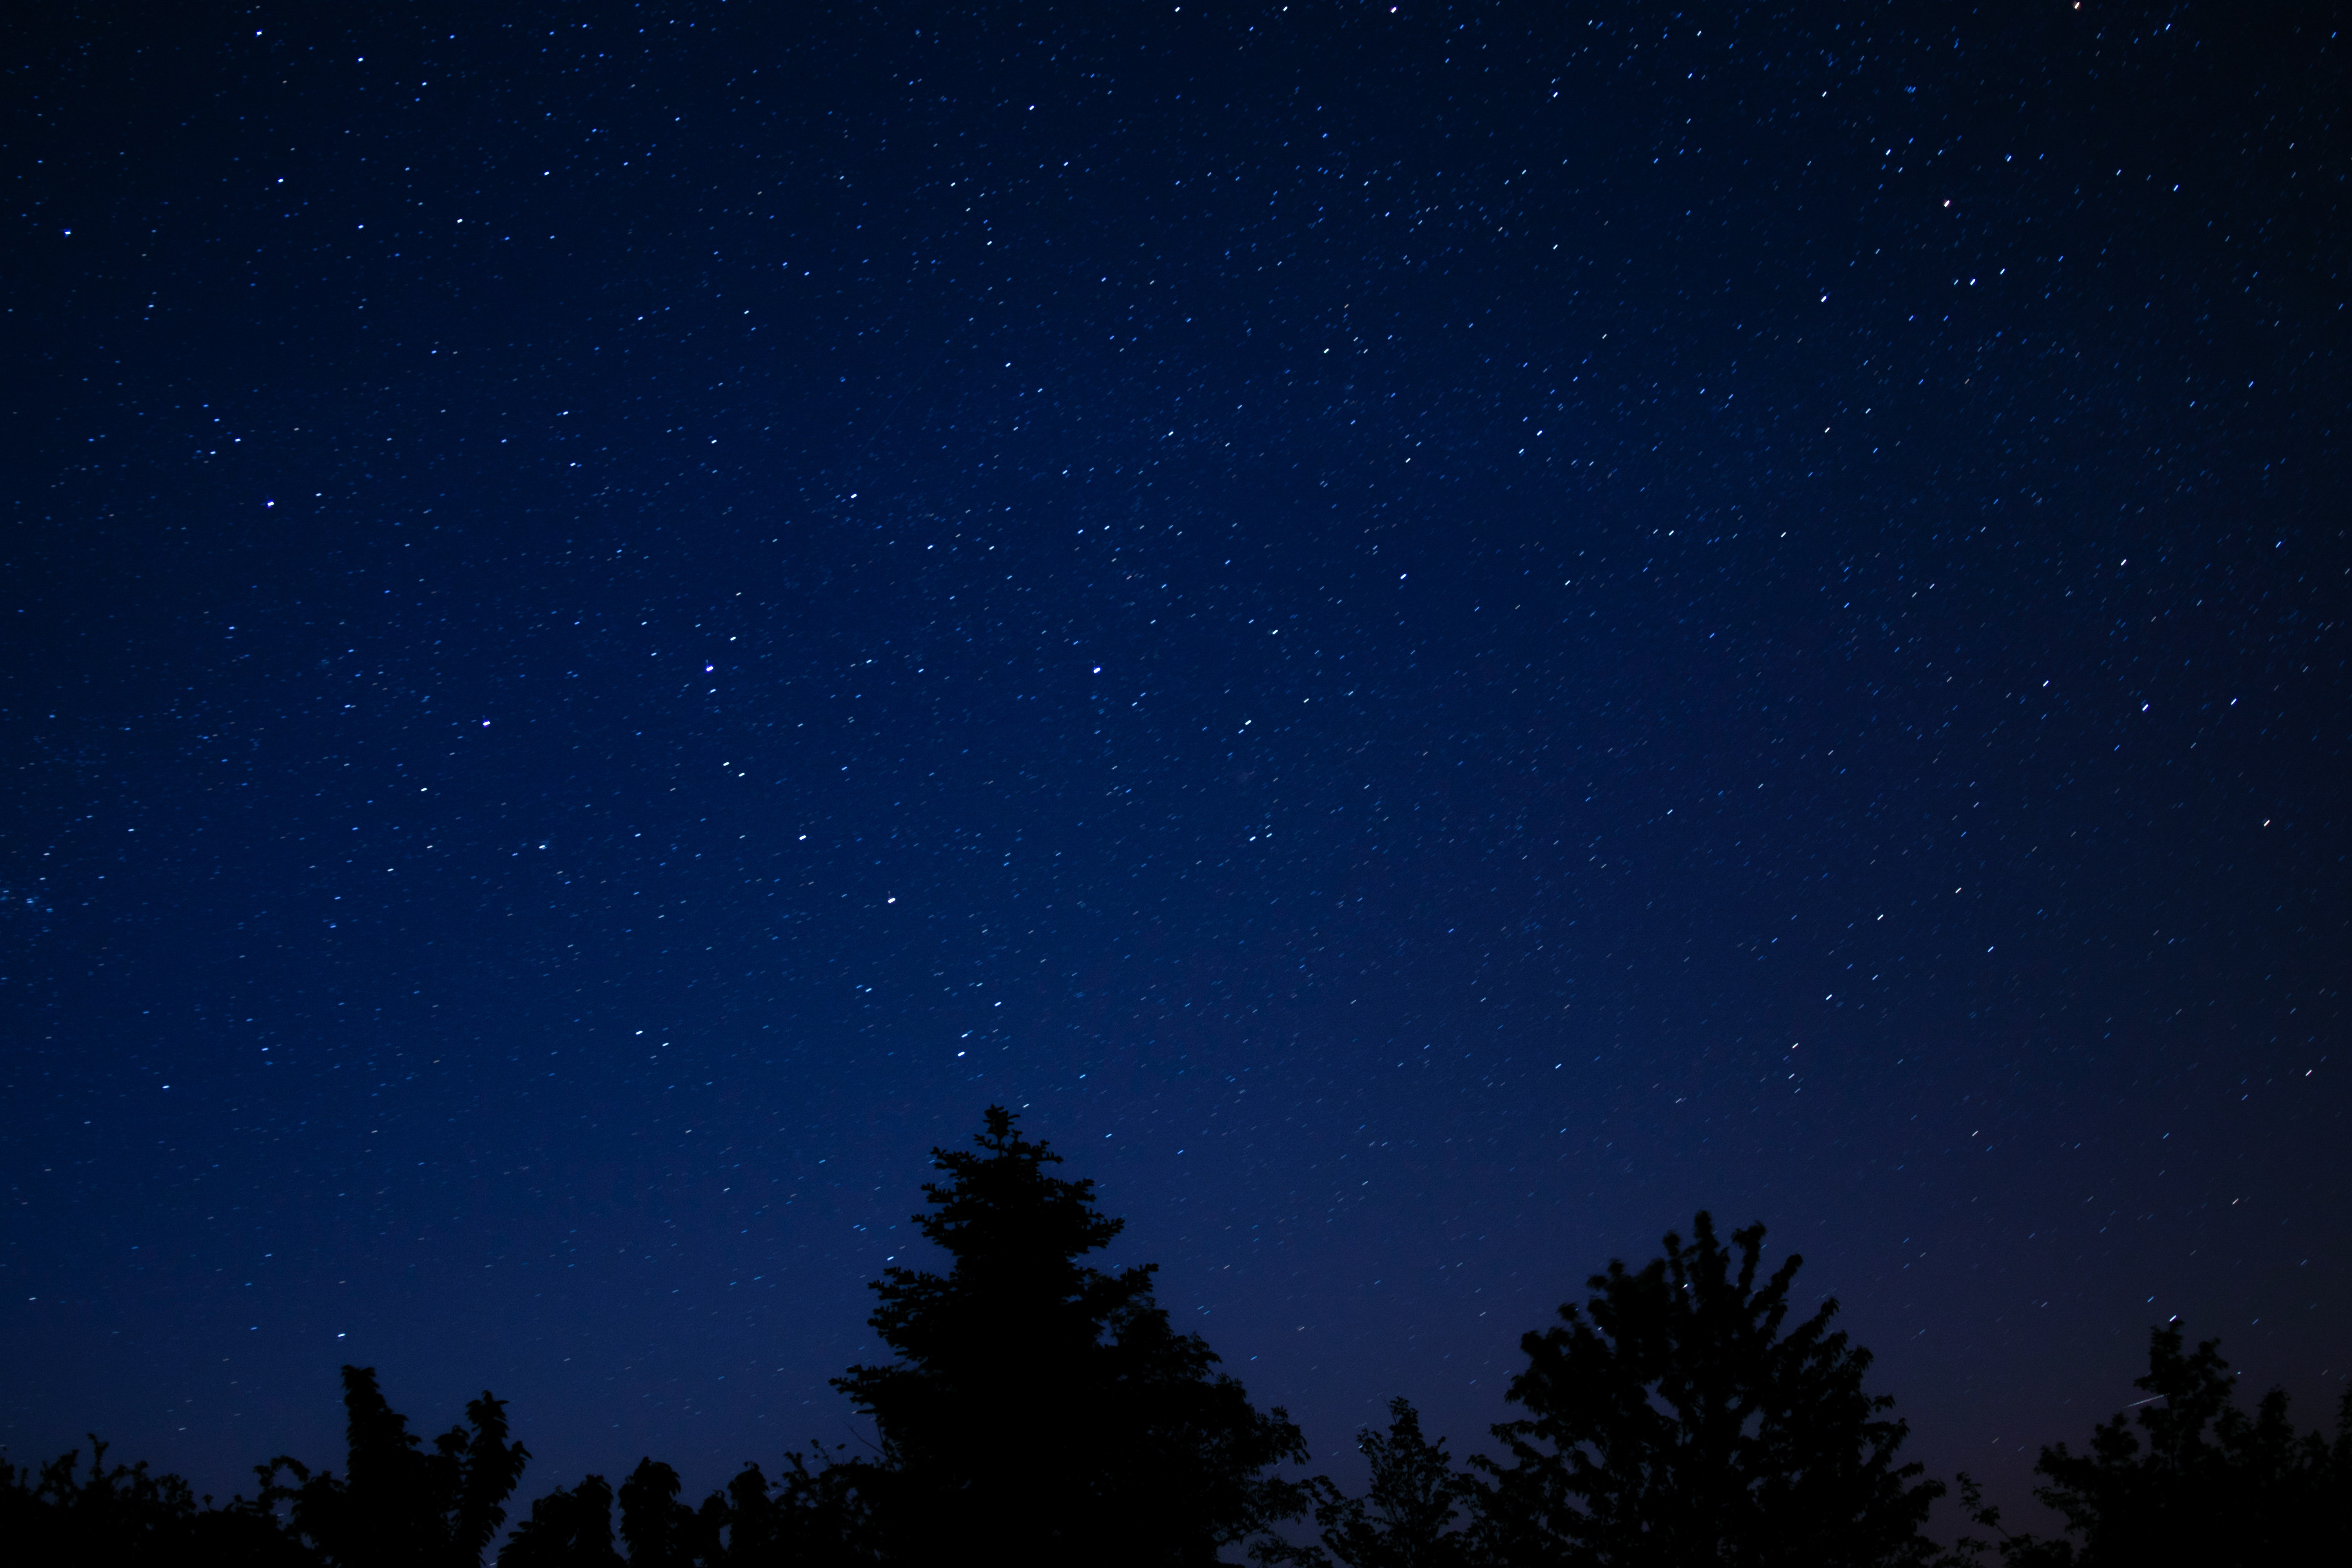 silhouette of trees under sky with stars